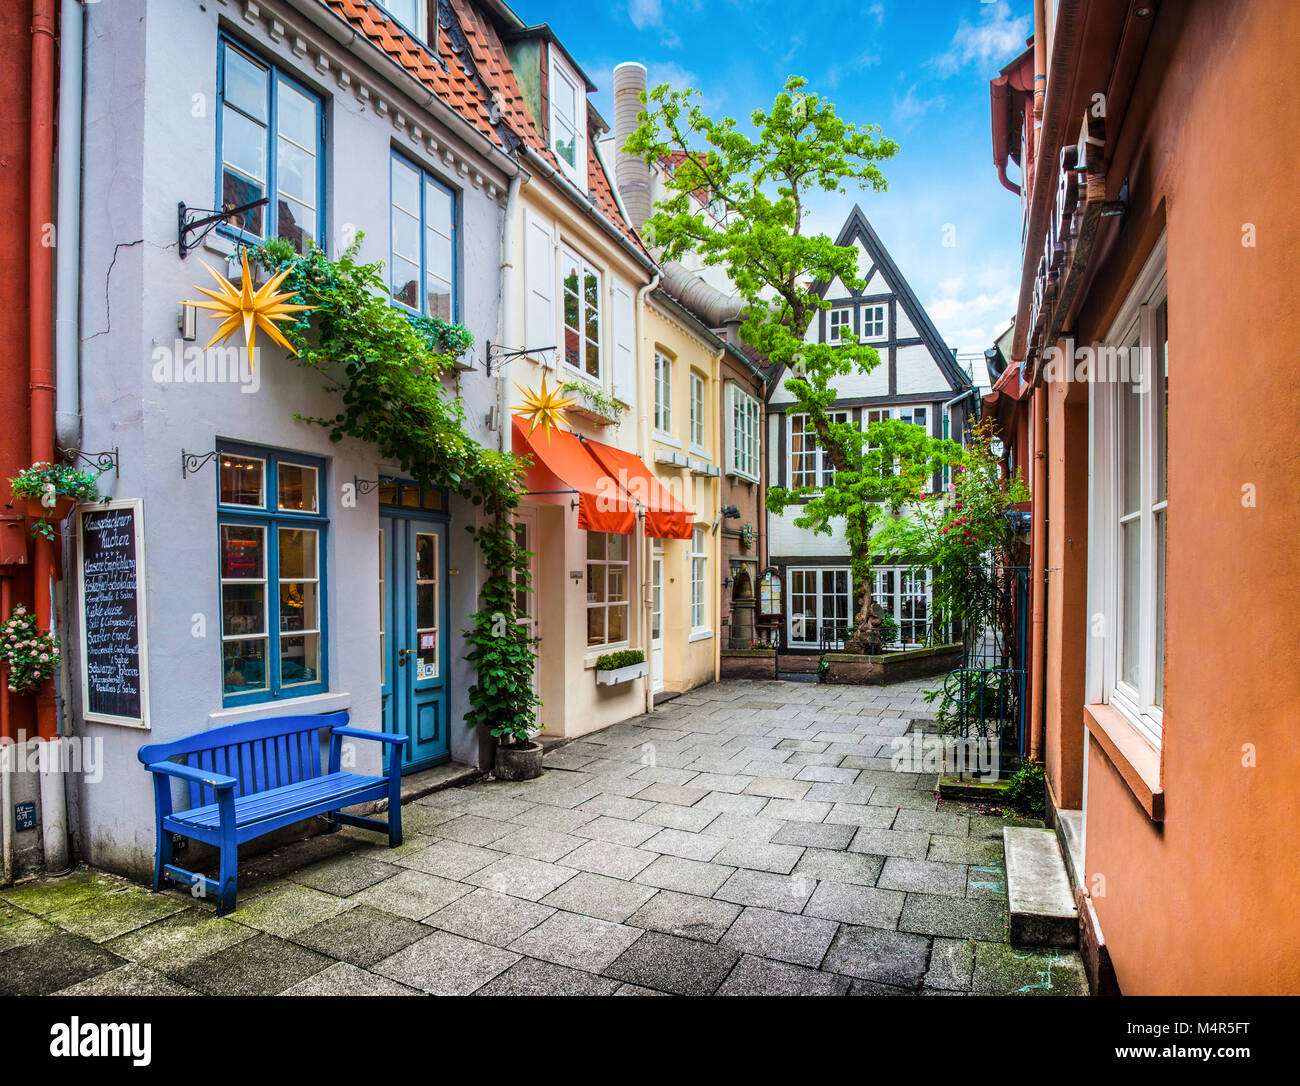 Colorful houses in historic Schnoorviertel in Bremen, Germany - Stock Image